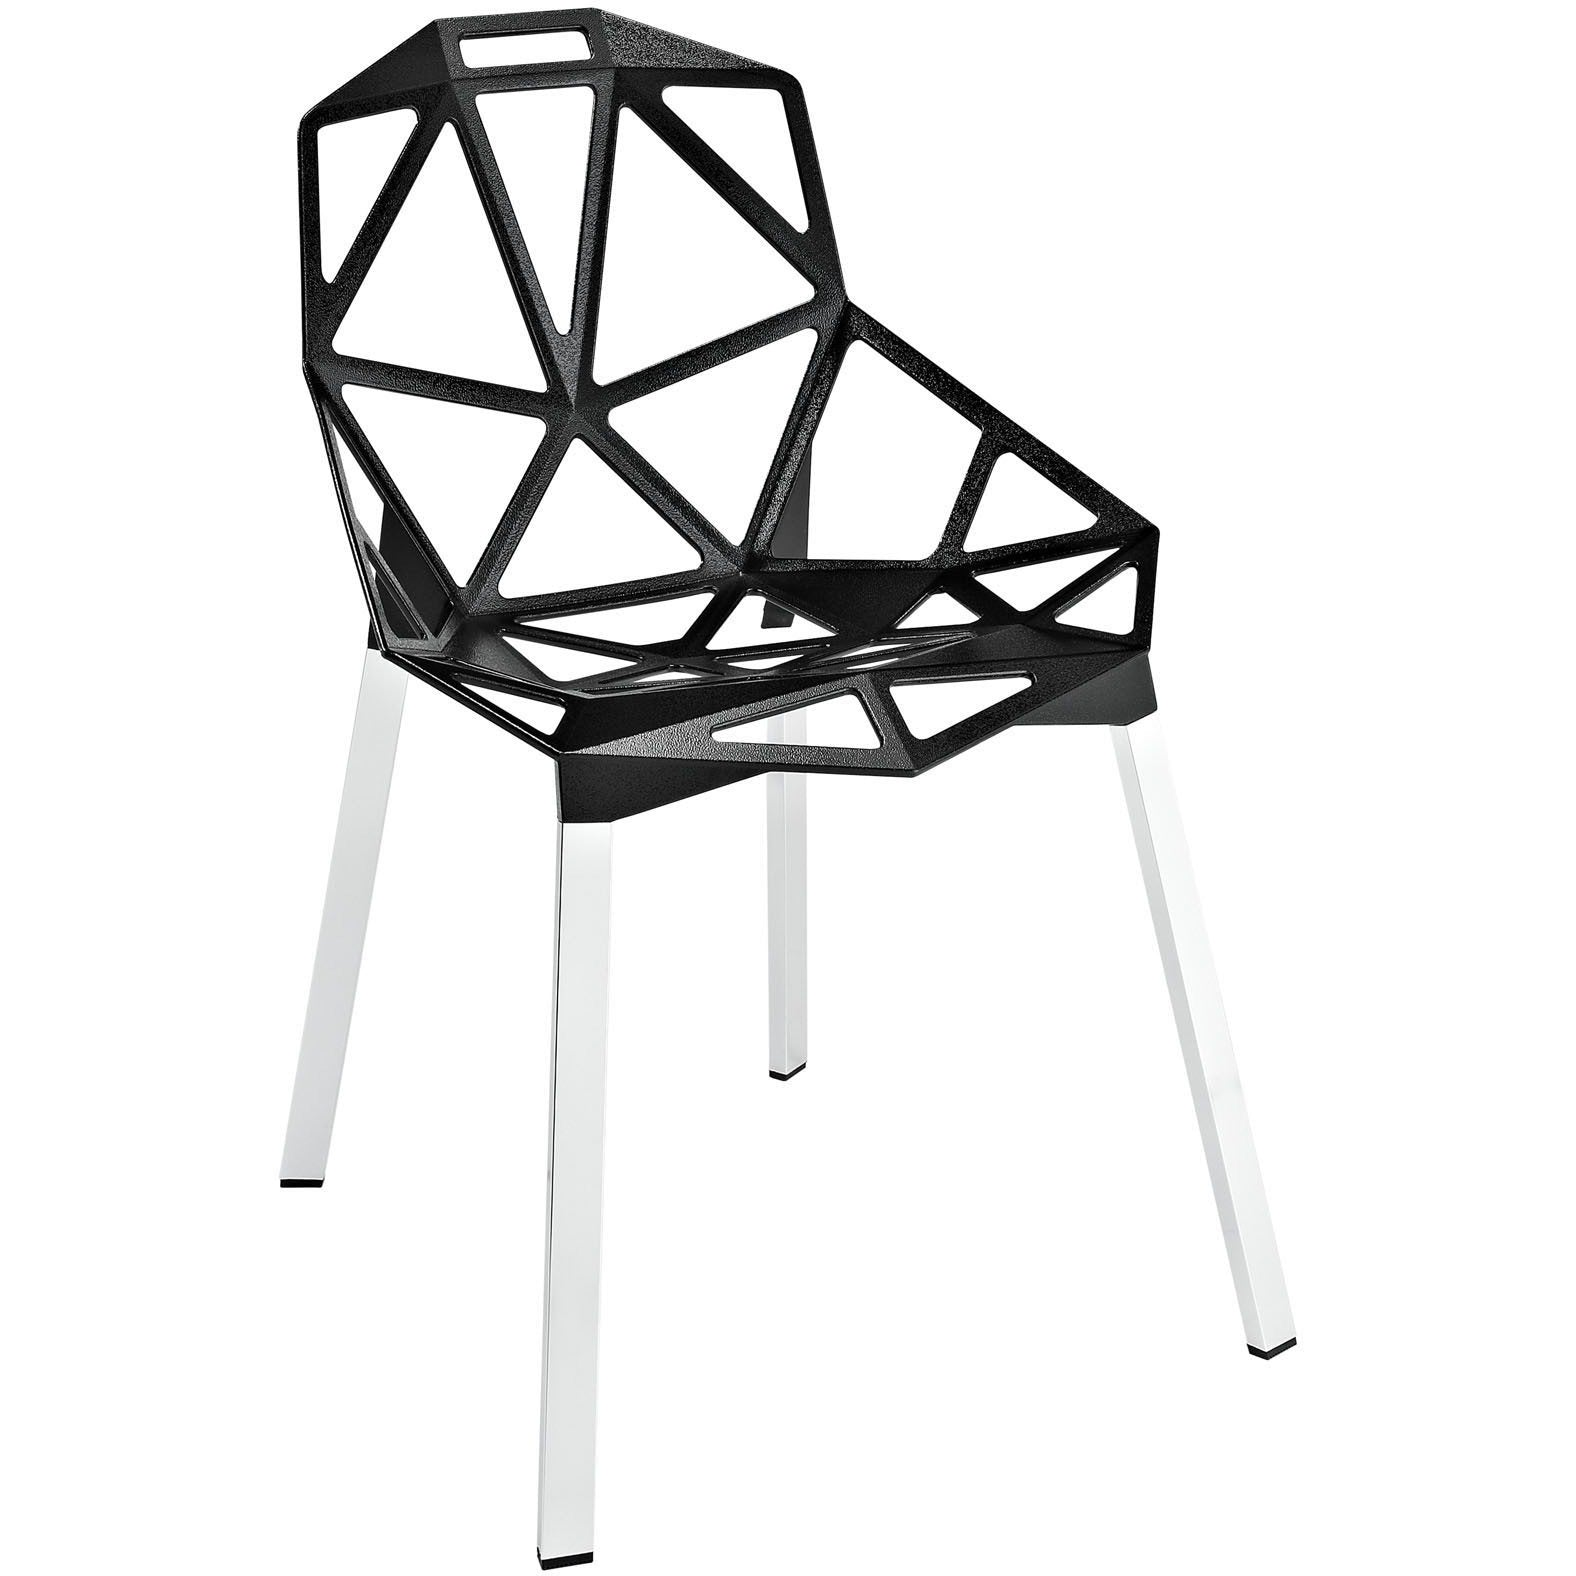 Exceptionnel ... Modway Furniture Connections Modern Dining Side Chair Black, Dining  Chairs   Modway Furniture, Minimal ...